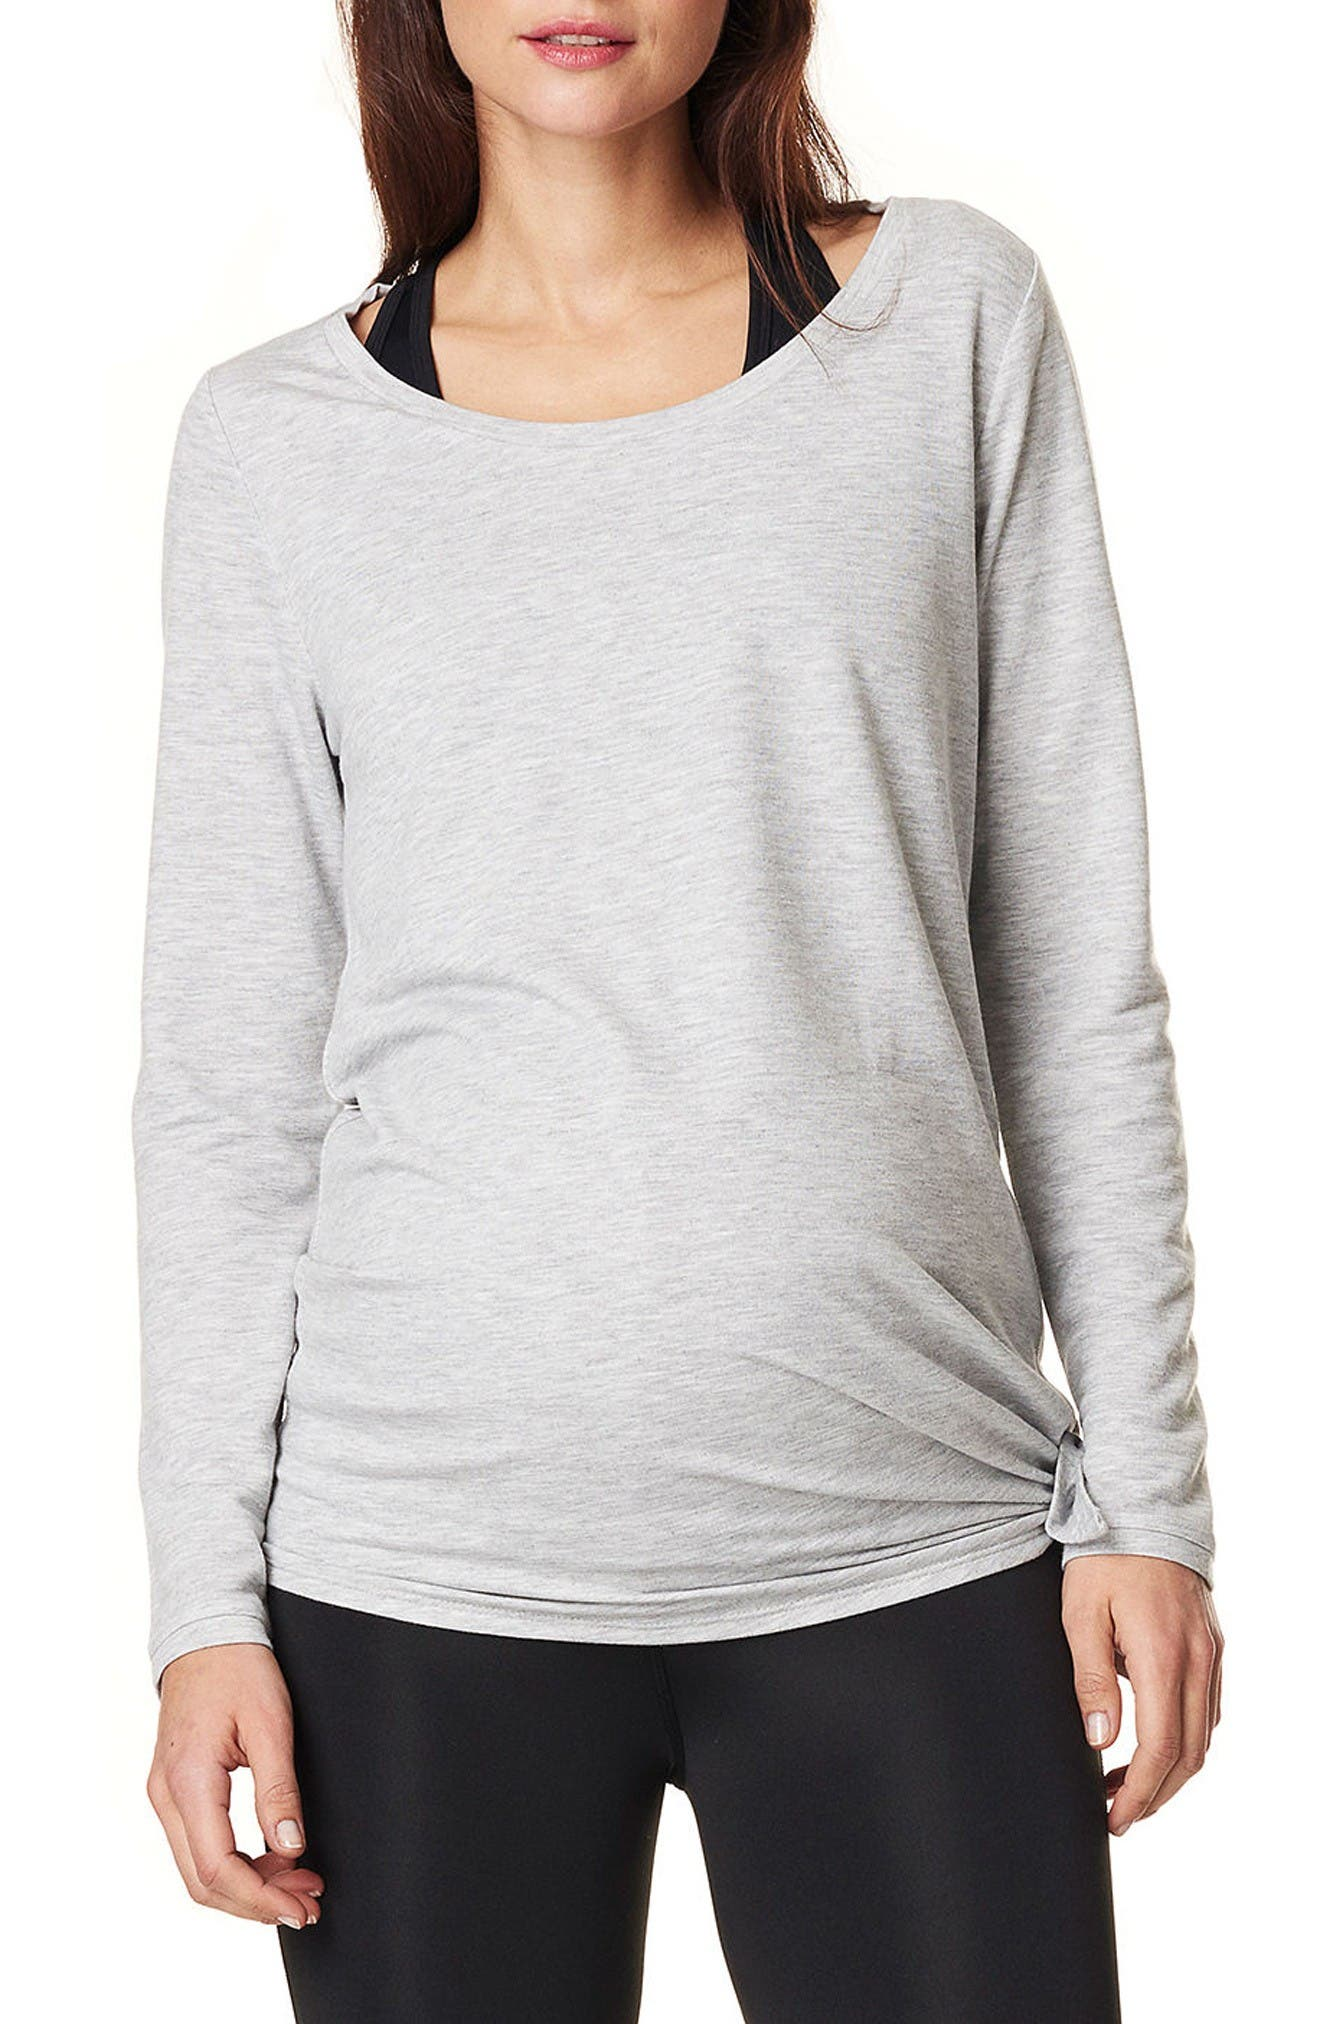 Heather Athletic Maternity Top,                         Main,                         color, Grey Melange